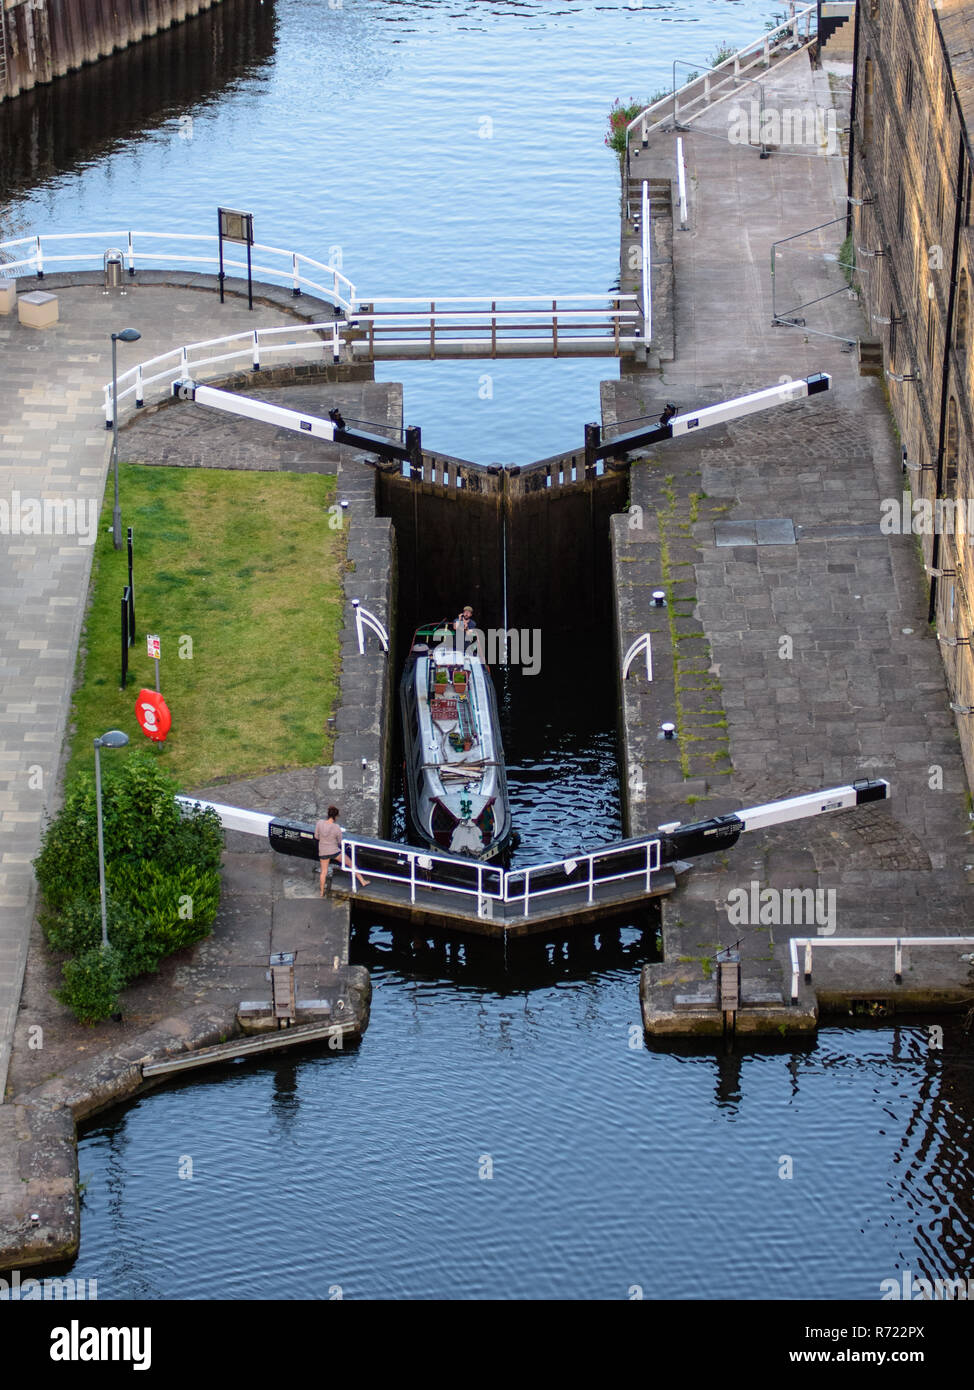 Leeds, England, UK - June 28, 2015: A couple navigate canal lock gates separating the River Aire navigation from the Leeds and Liverpool Canal as view - Stock Image